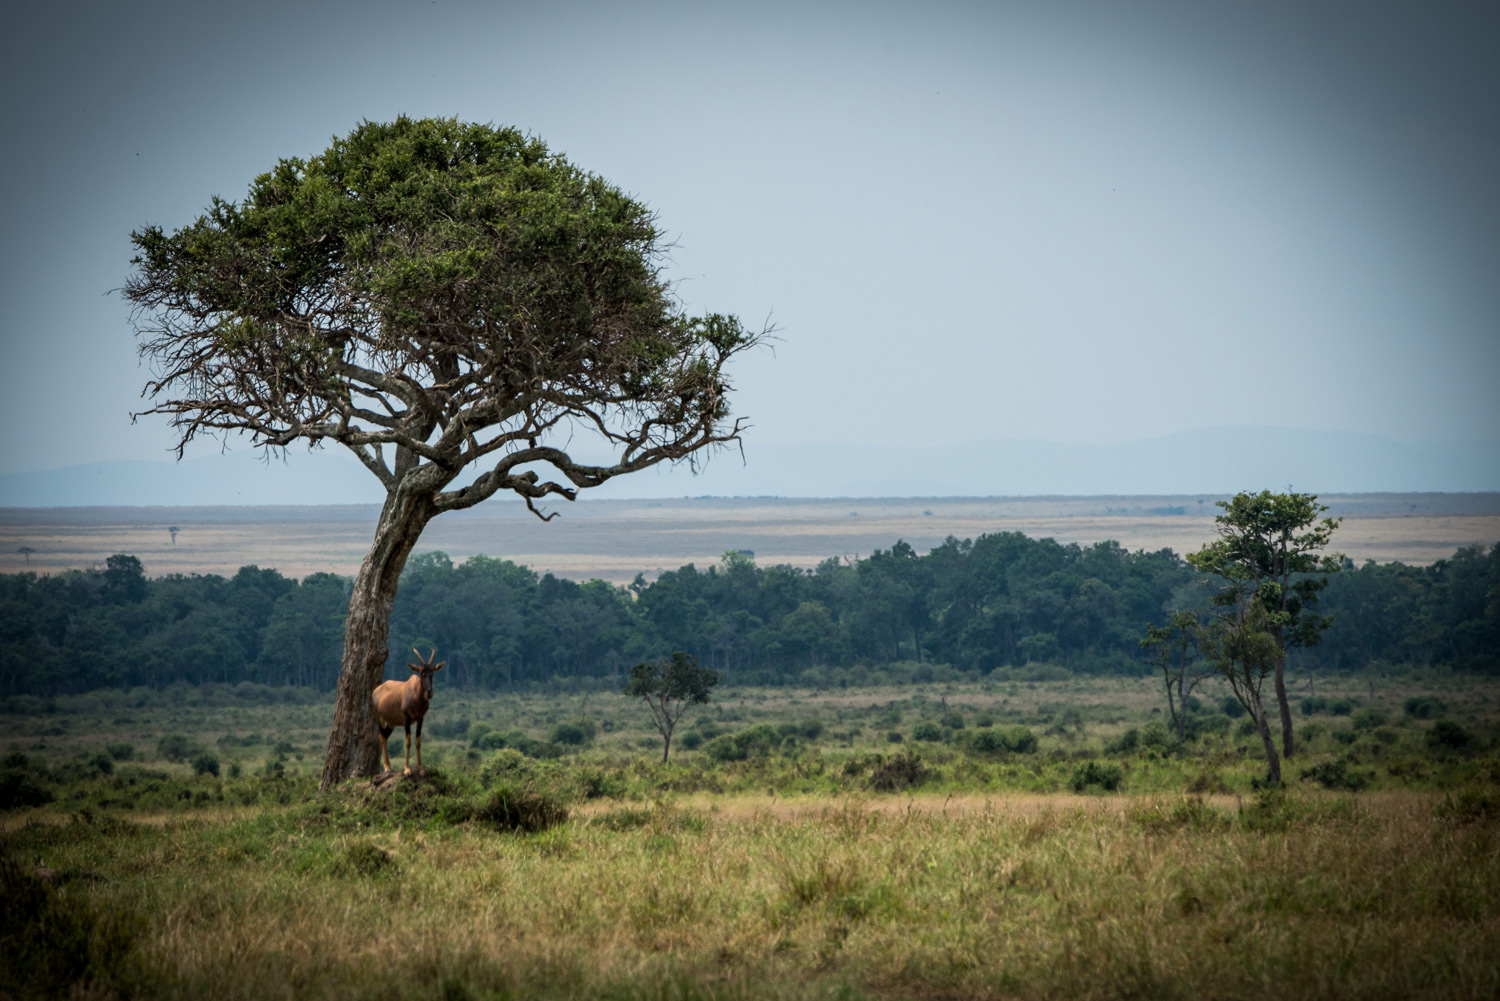 Topi and the tree in kenyan plains